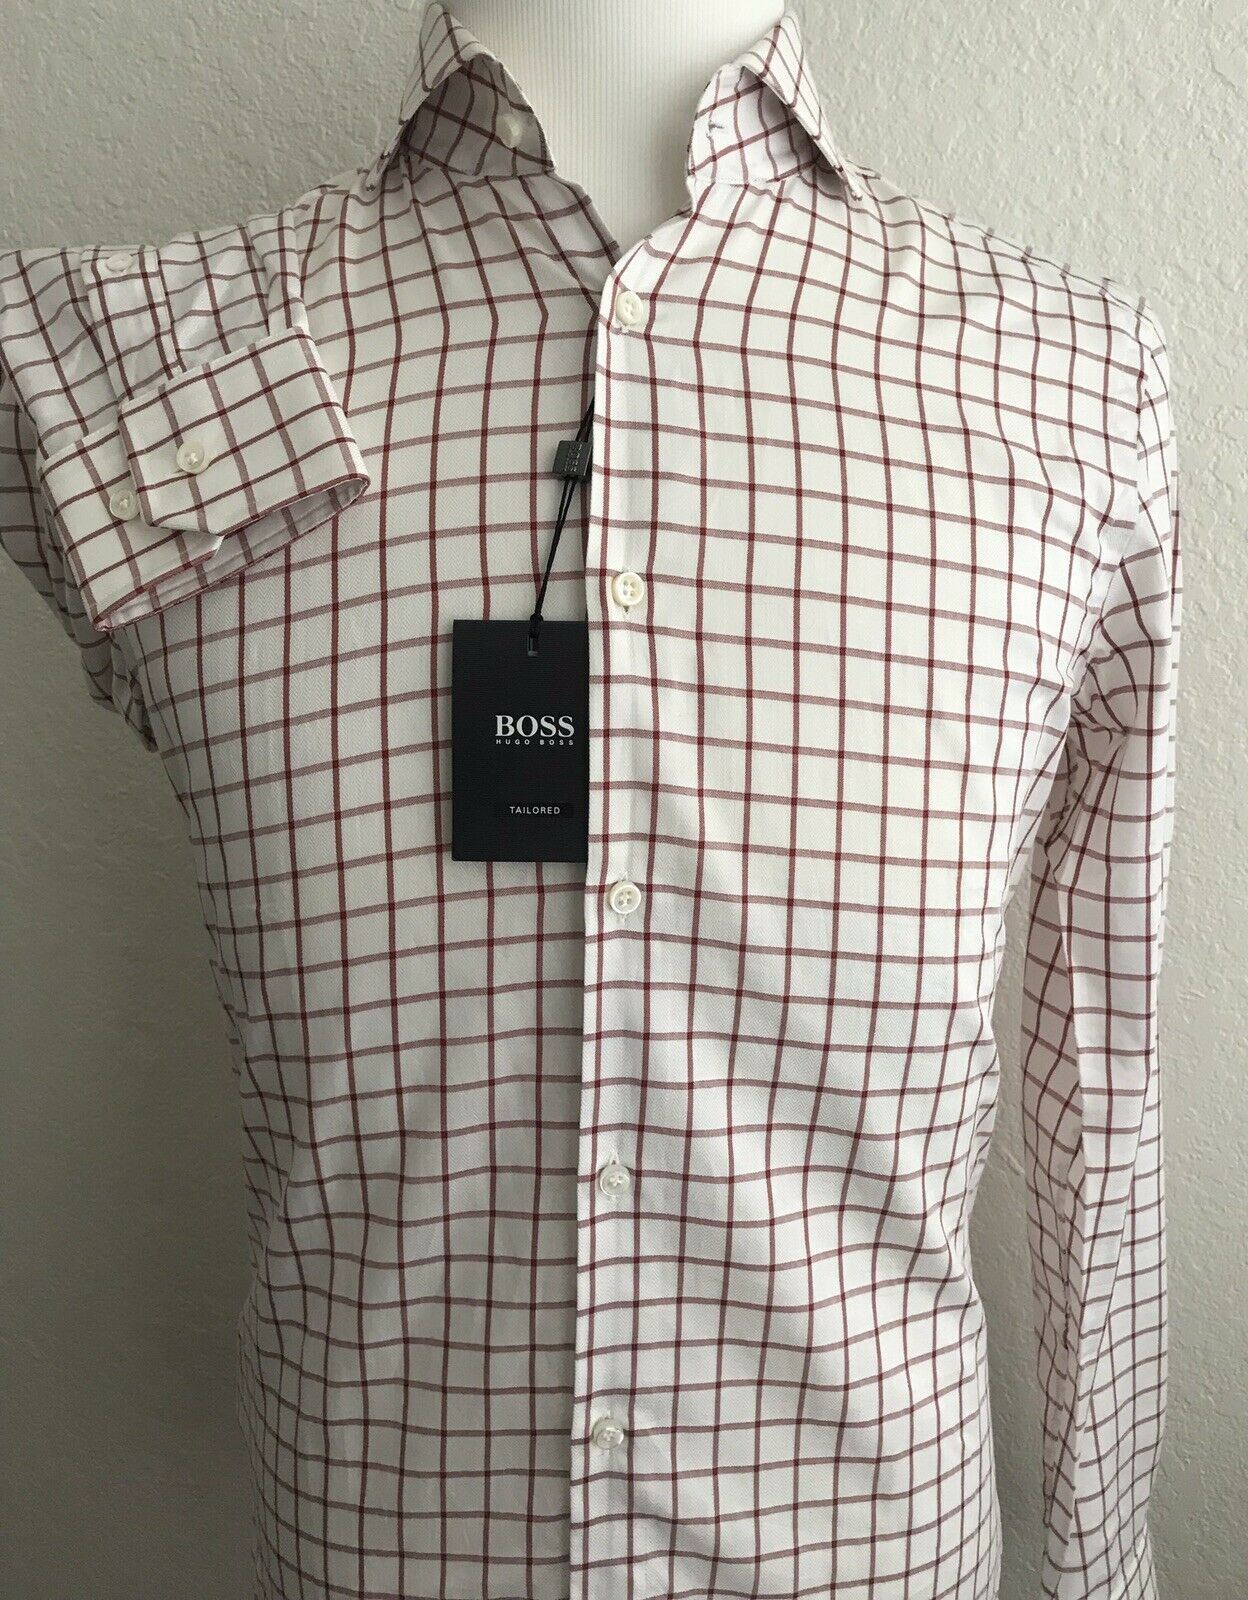 NWT $255 Hugo Boss Mens T-Shan Slim Fit Tailored Red Dress Shirt Size 37 /14.5